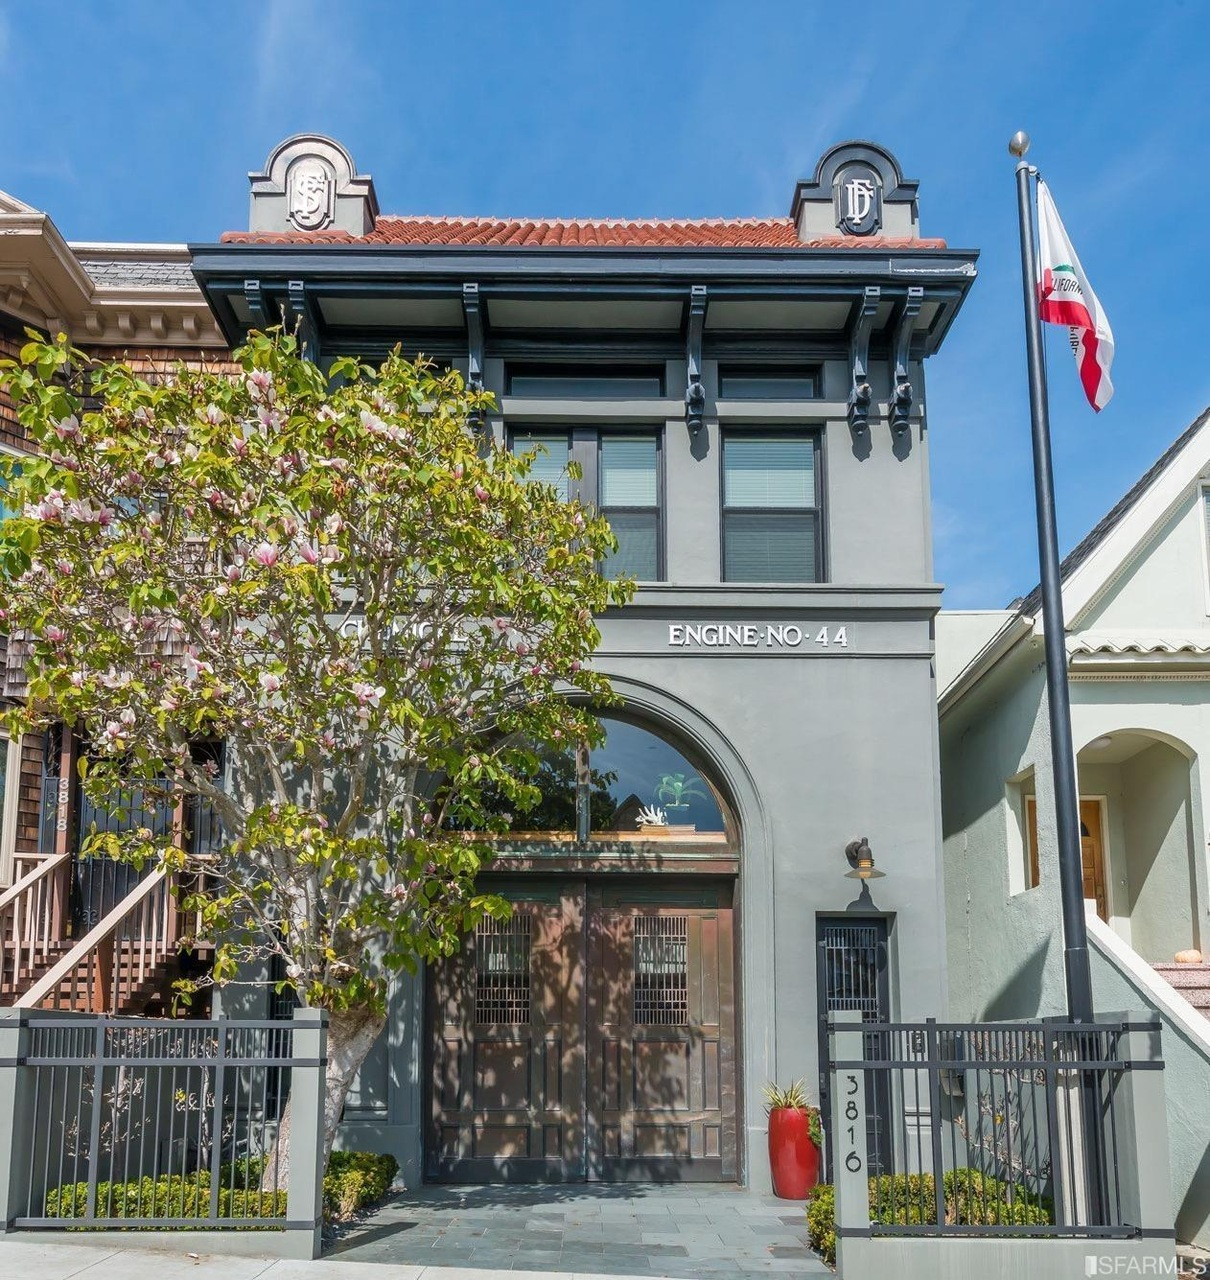 """A former firehouse turned contemporary home, with the words """"Engine No 44"""" still visible on the facade."""